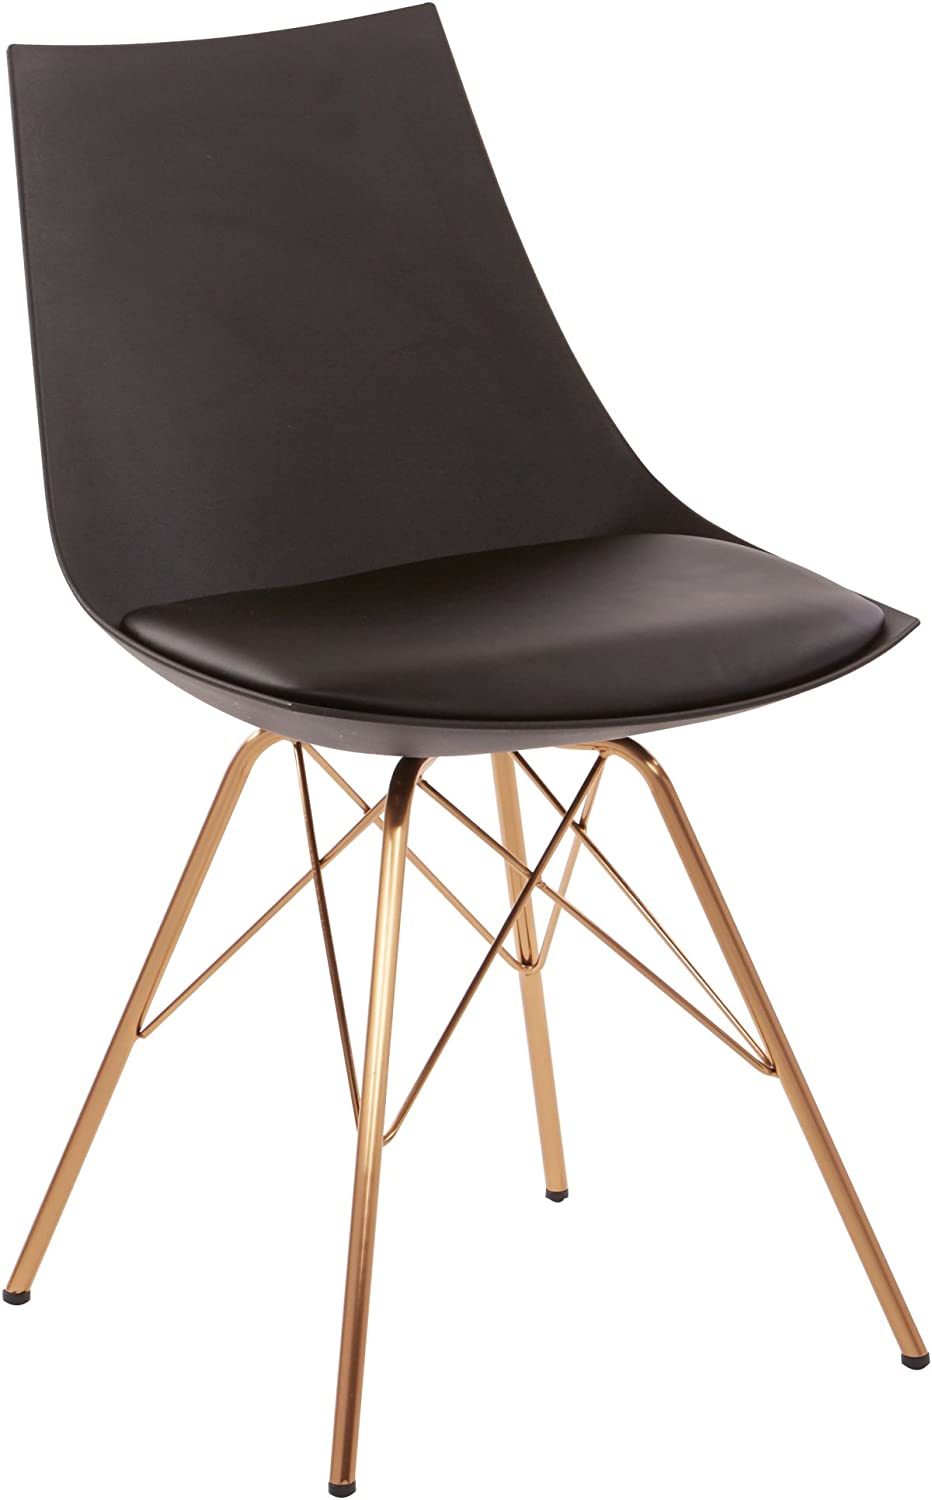 OSP Home Furnishings Oakley Mid-Century Modern Bucket Chair, Black: Furniture & Decor